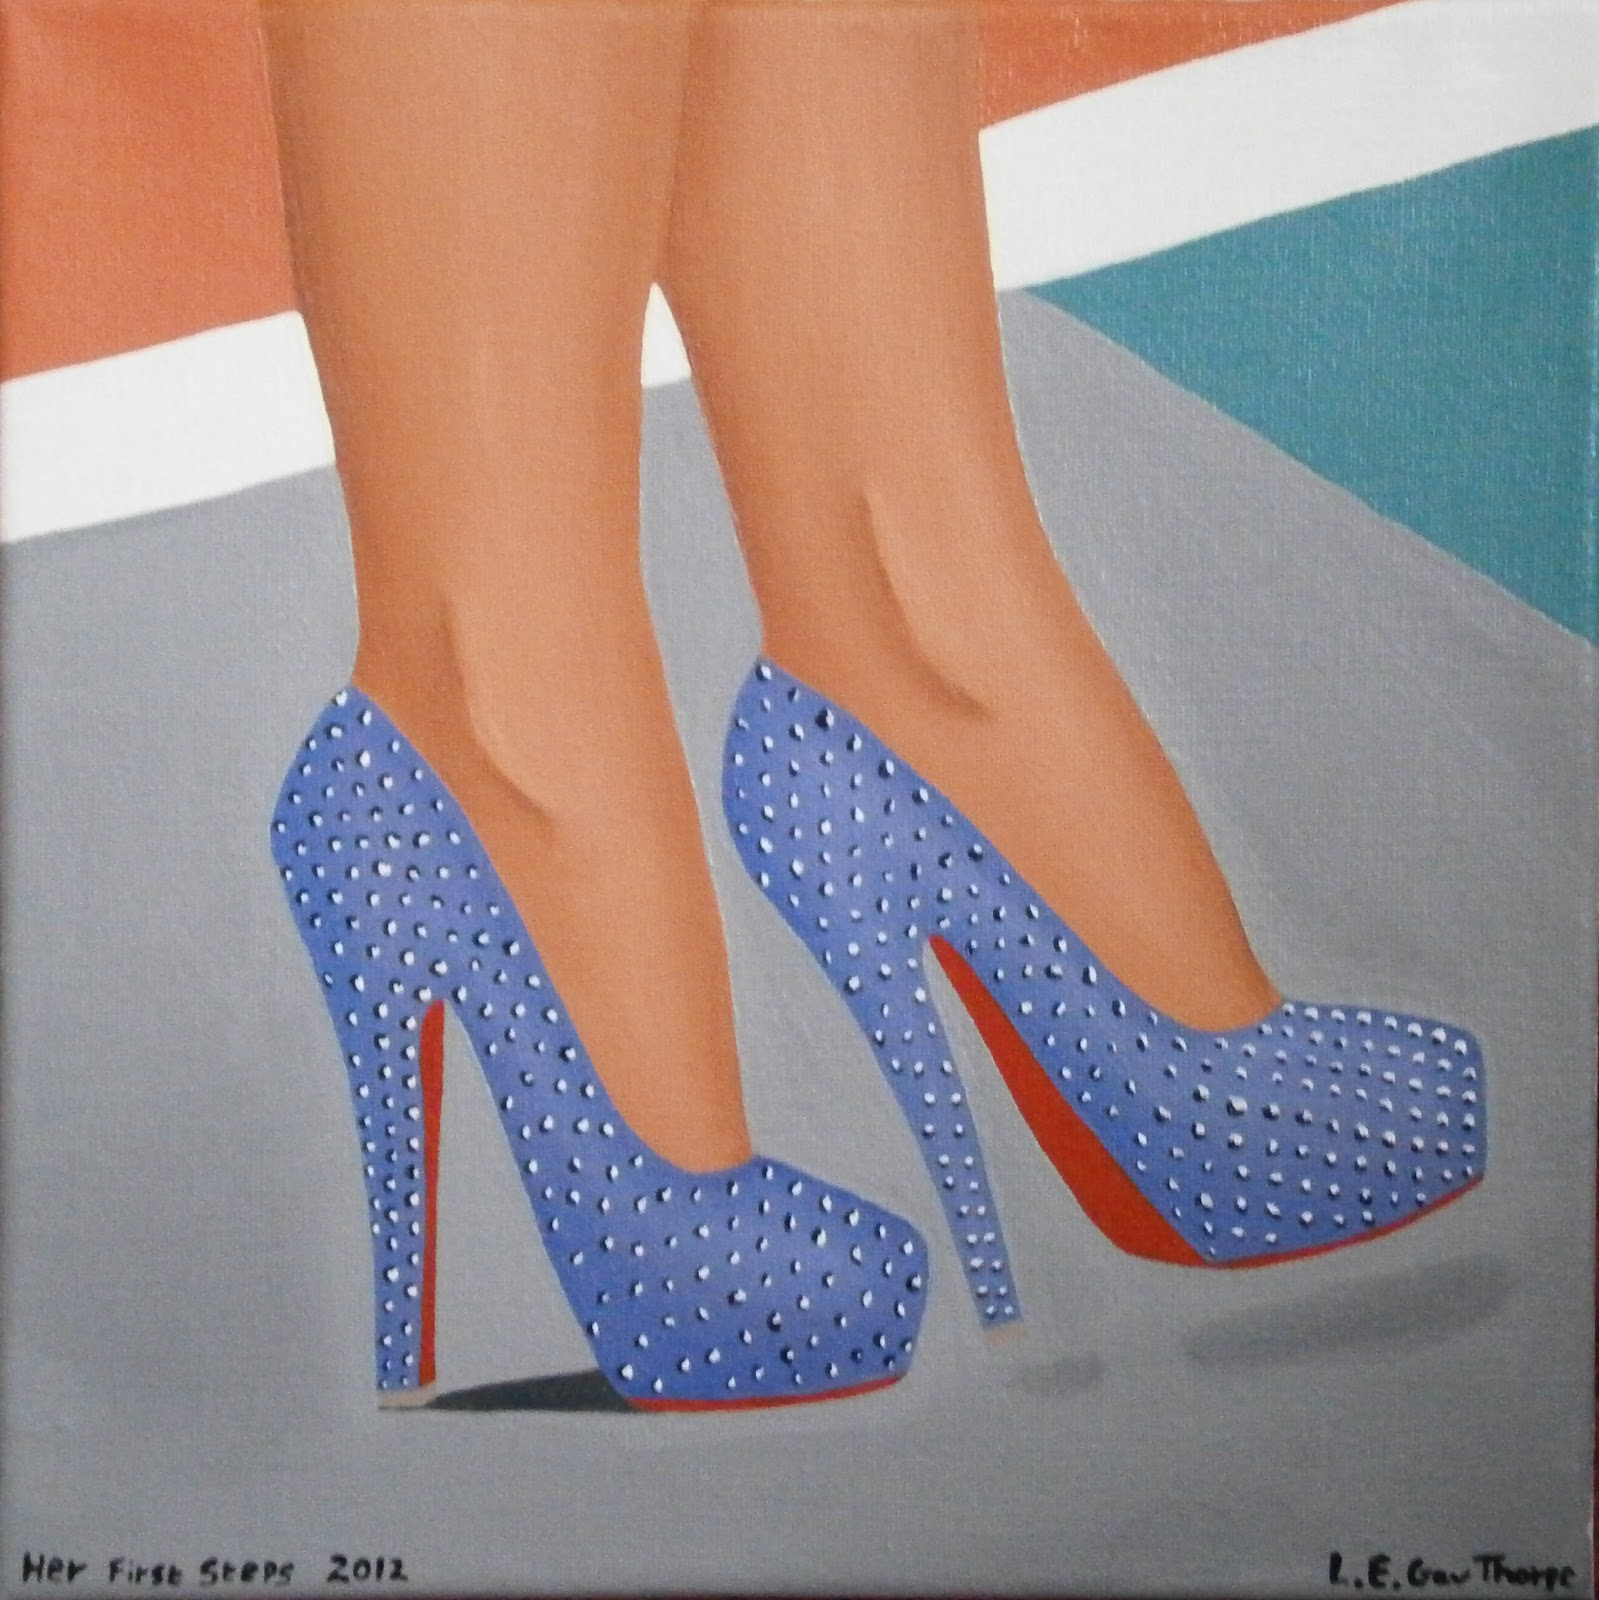 A woman wearing blue crystal encrusted high heeled shoes